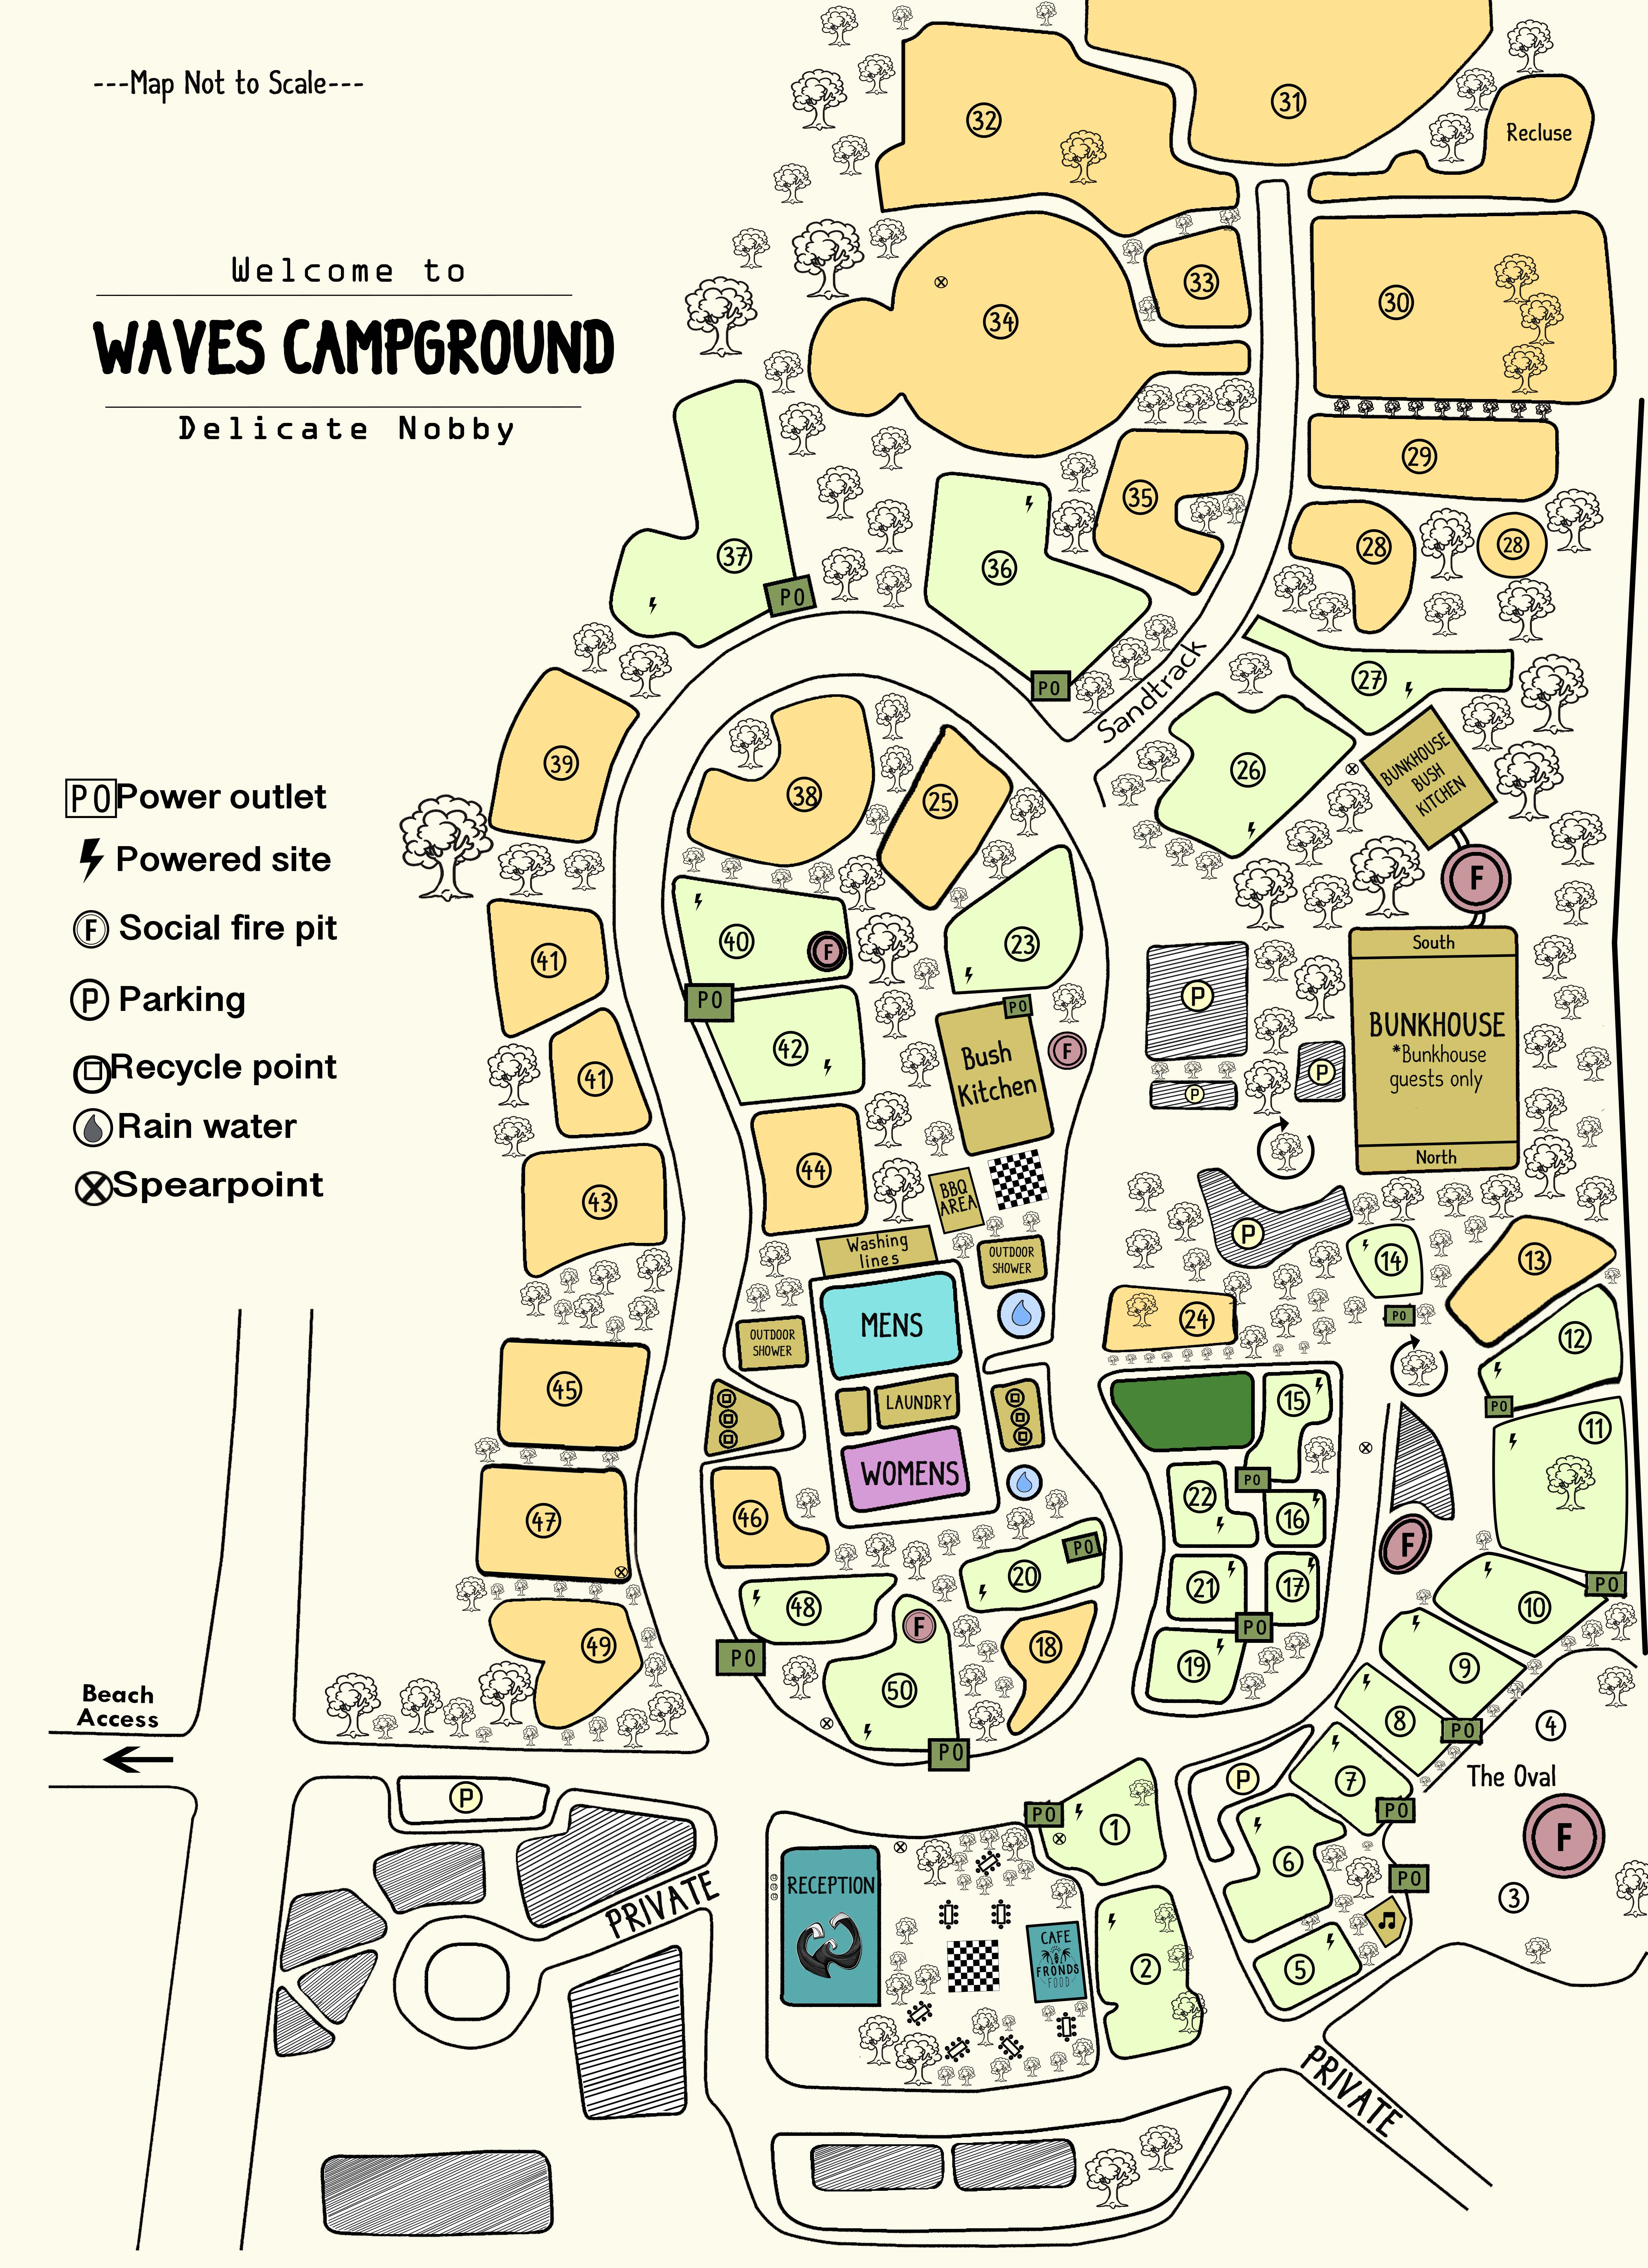 Map of Waves Campground